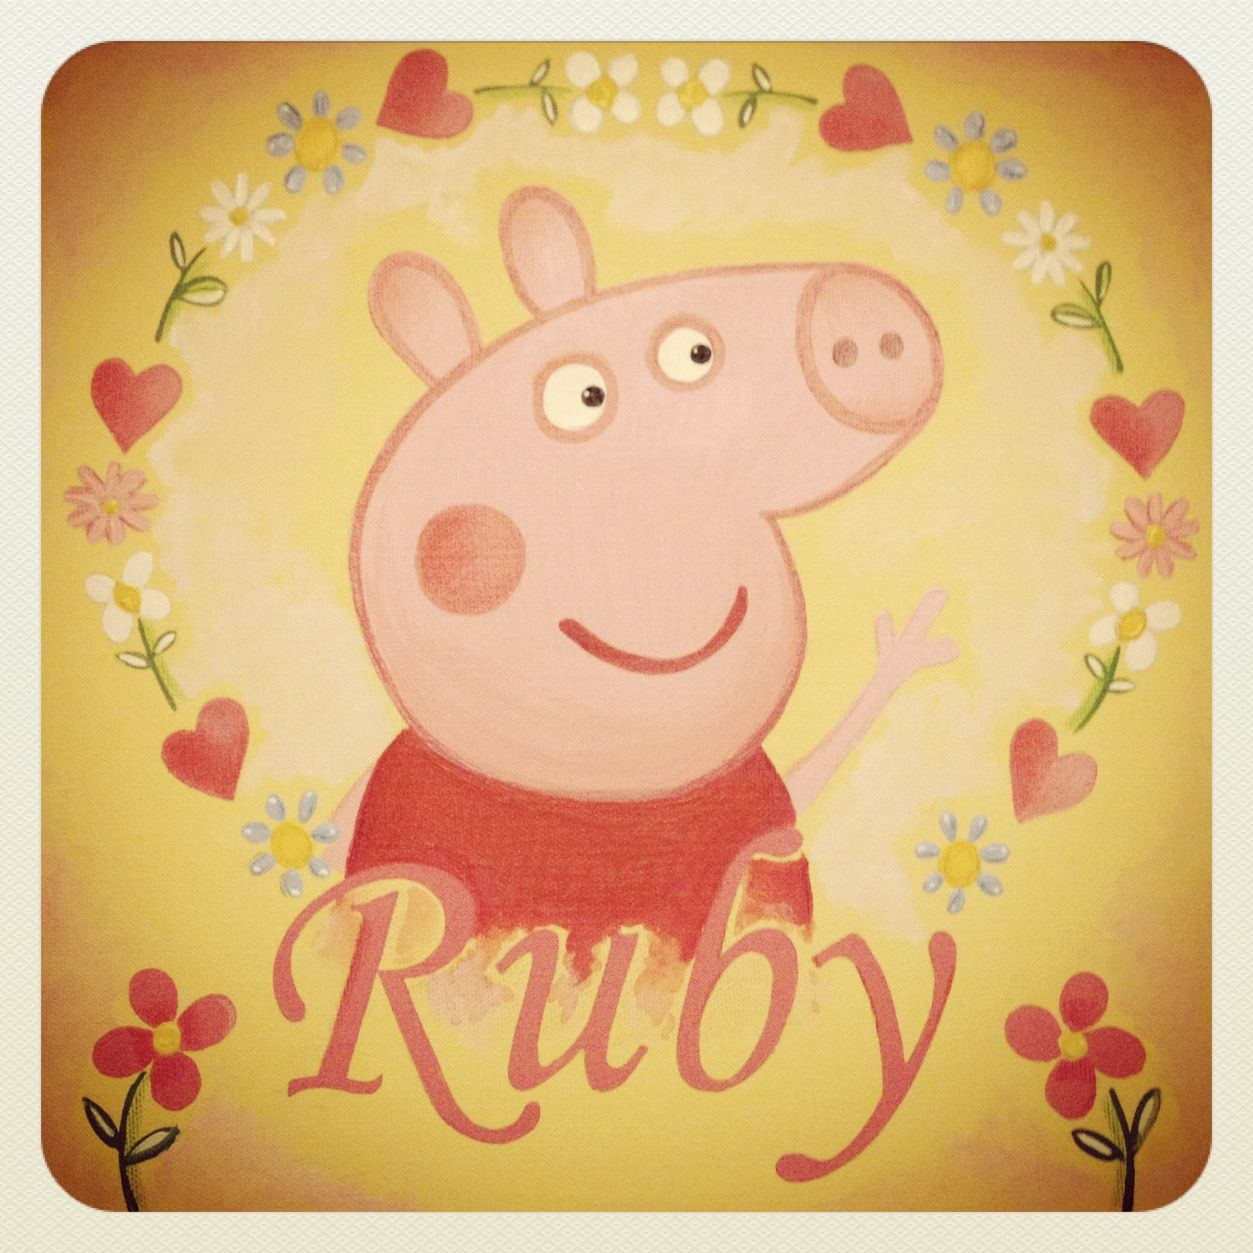 Peppa Pig name canvas | Canvas | Pinterest | Canvases